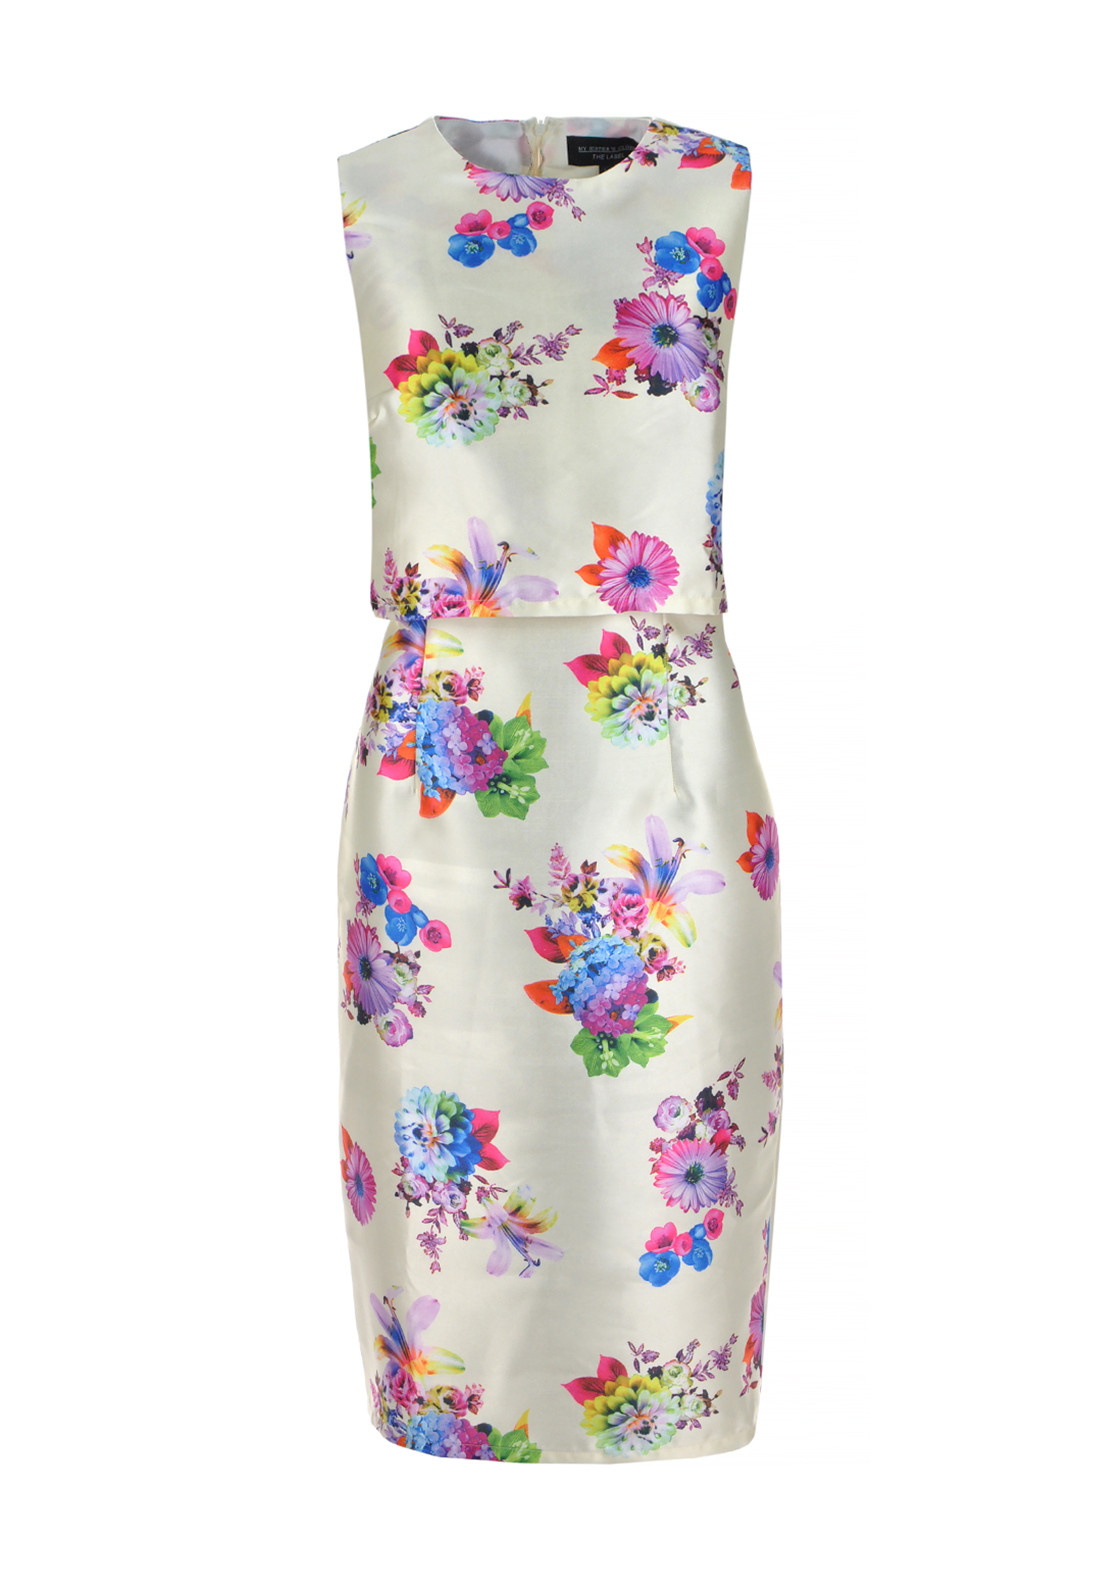 My Sister's Closet Alice Floral Print Satin Overlay Dress, Cream